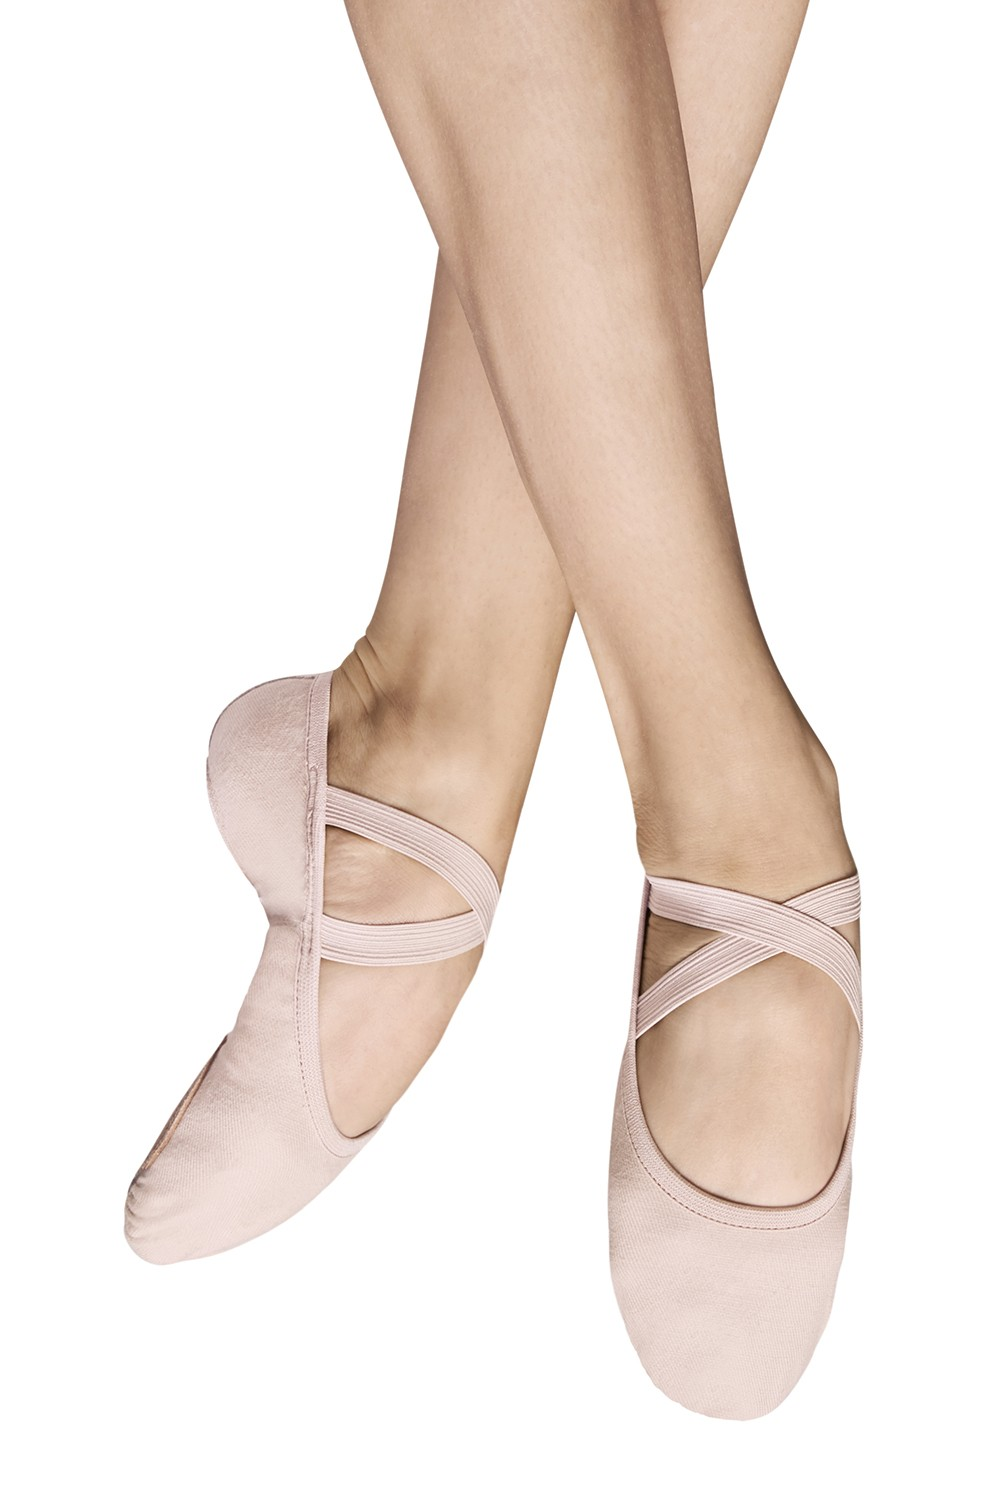 Performa - Niños Girl's Ballet Shoes